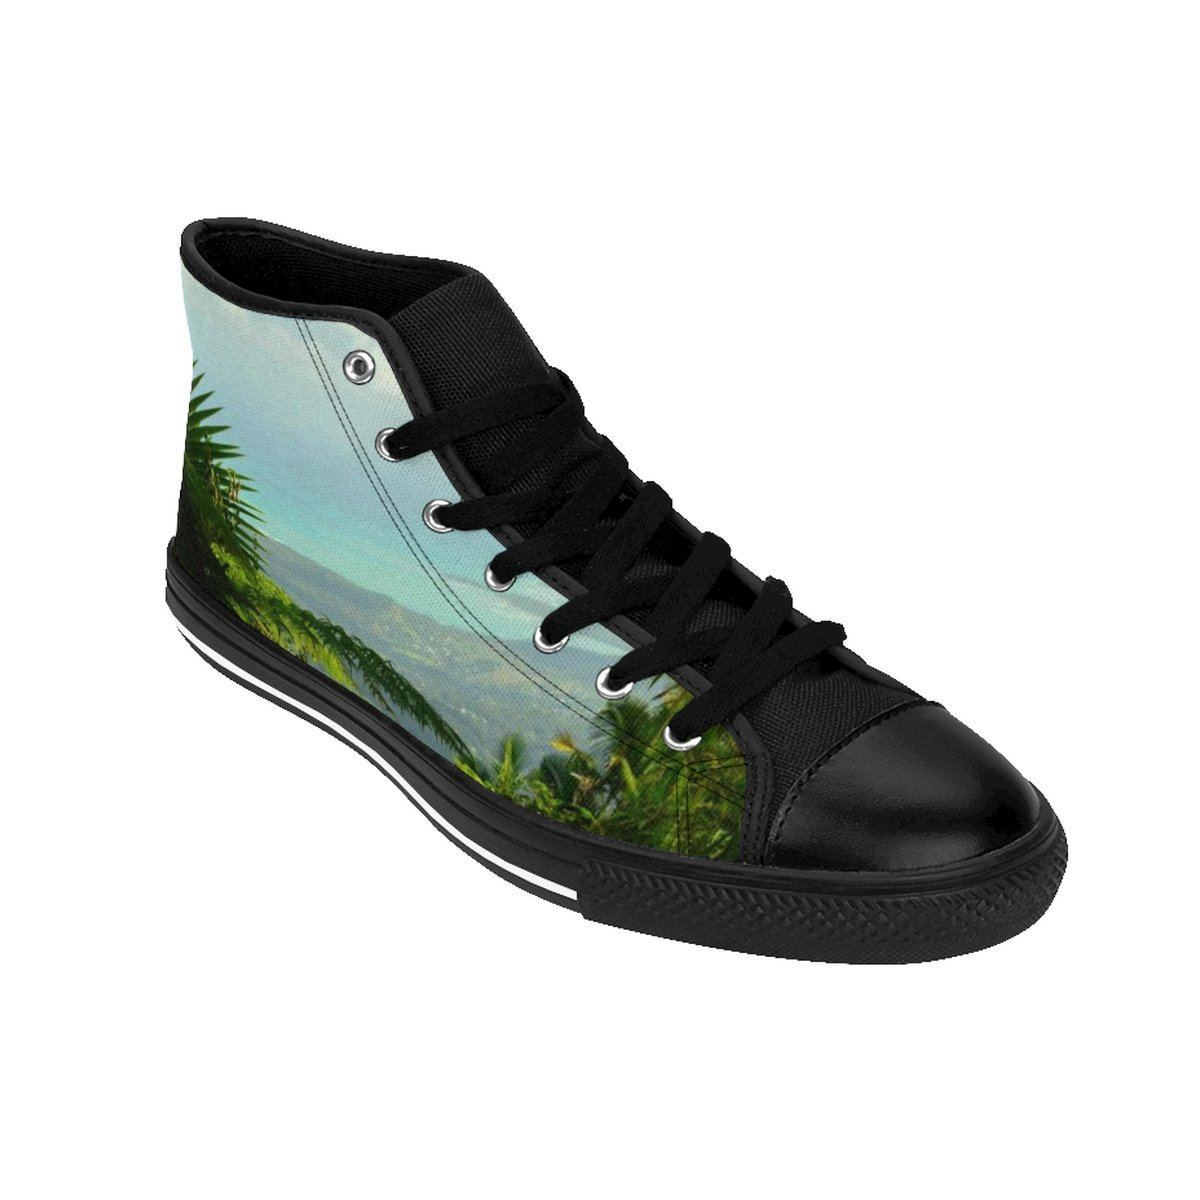 Women's High-top Sneakers - Views of the forest and coast - El Yunque rain forest PR Shoes Printify